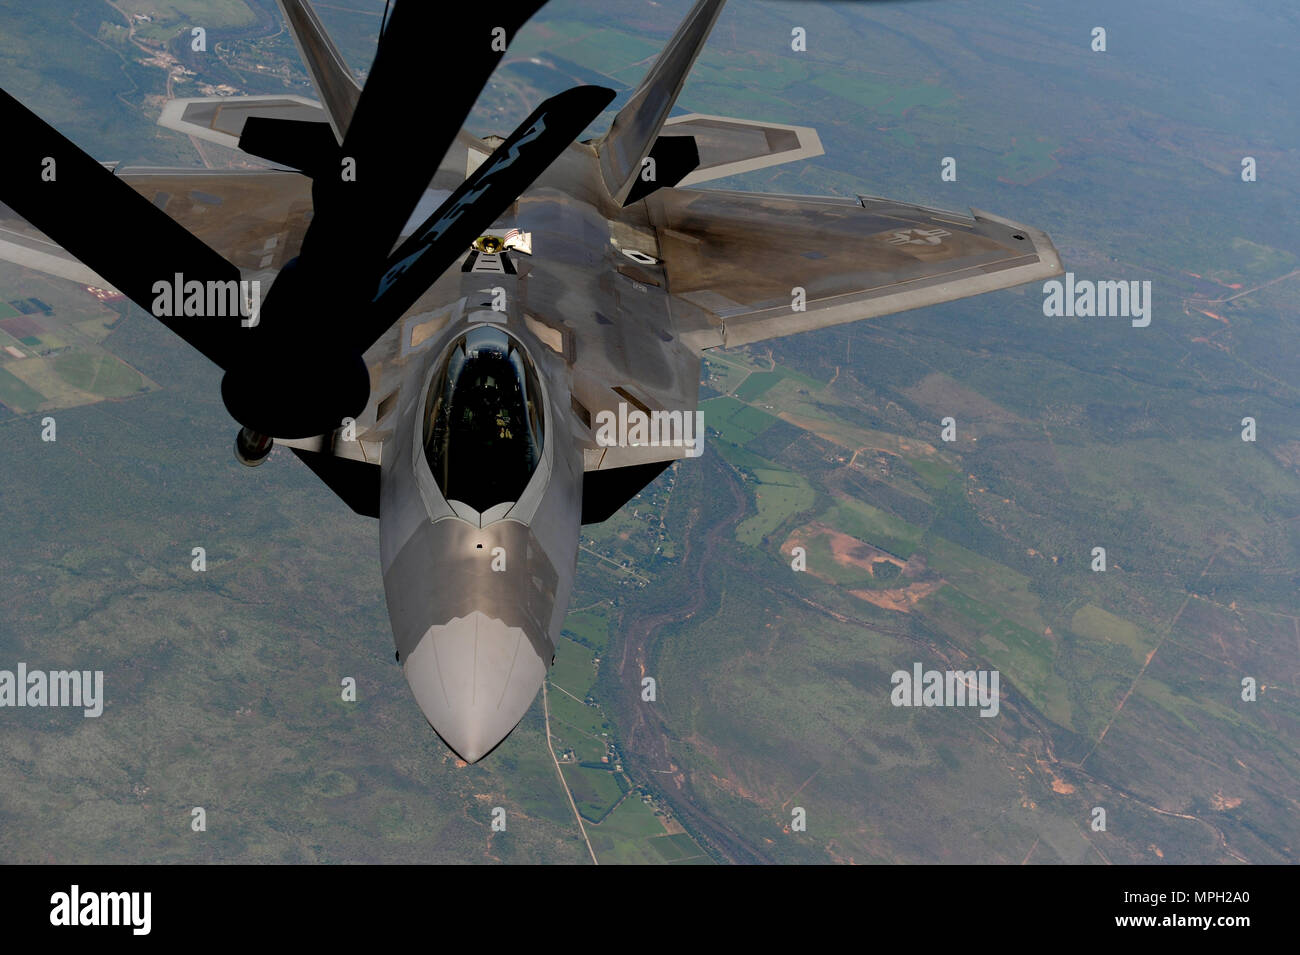 A U.S. Air Force F-22 Raptor assigned to the 90th Fighter Squadron approaches a U.S. Air Force KC-135 Stratotanker in order to receive fuel in the skies above Royal Australian Air Force Base Tindal, Australia, March 2, 2017. Twelve F-22 Raptors and approximately 200 U.S. Air Force Airmen participated in the first Enhanced Air Cooperation, an initiative under the Force Posture Agreement between the U.S. and Australia. (U.S. Air Force photo by Staff Sgt. Alexander Martinez) - Stock Image